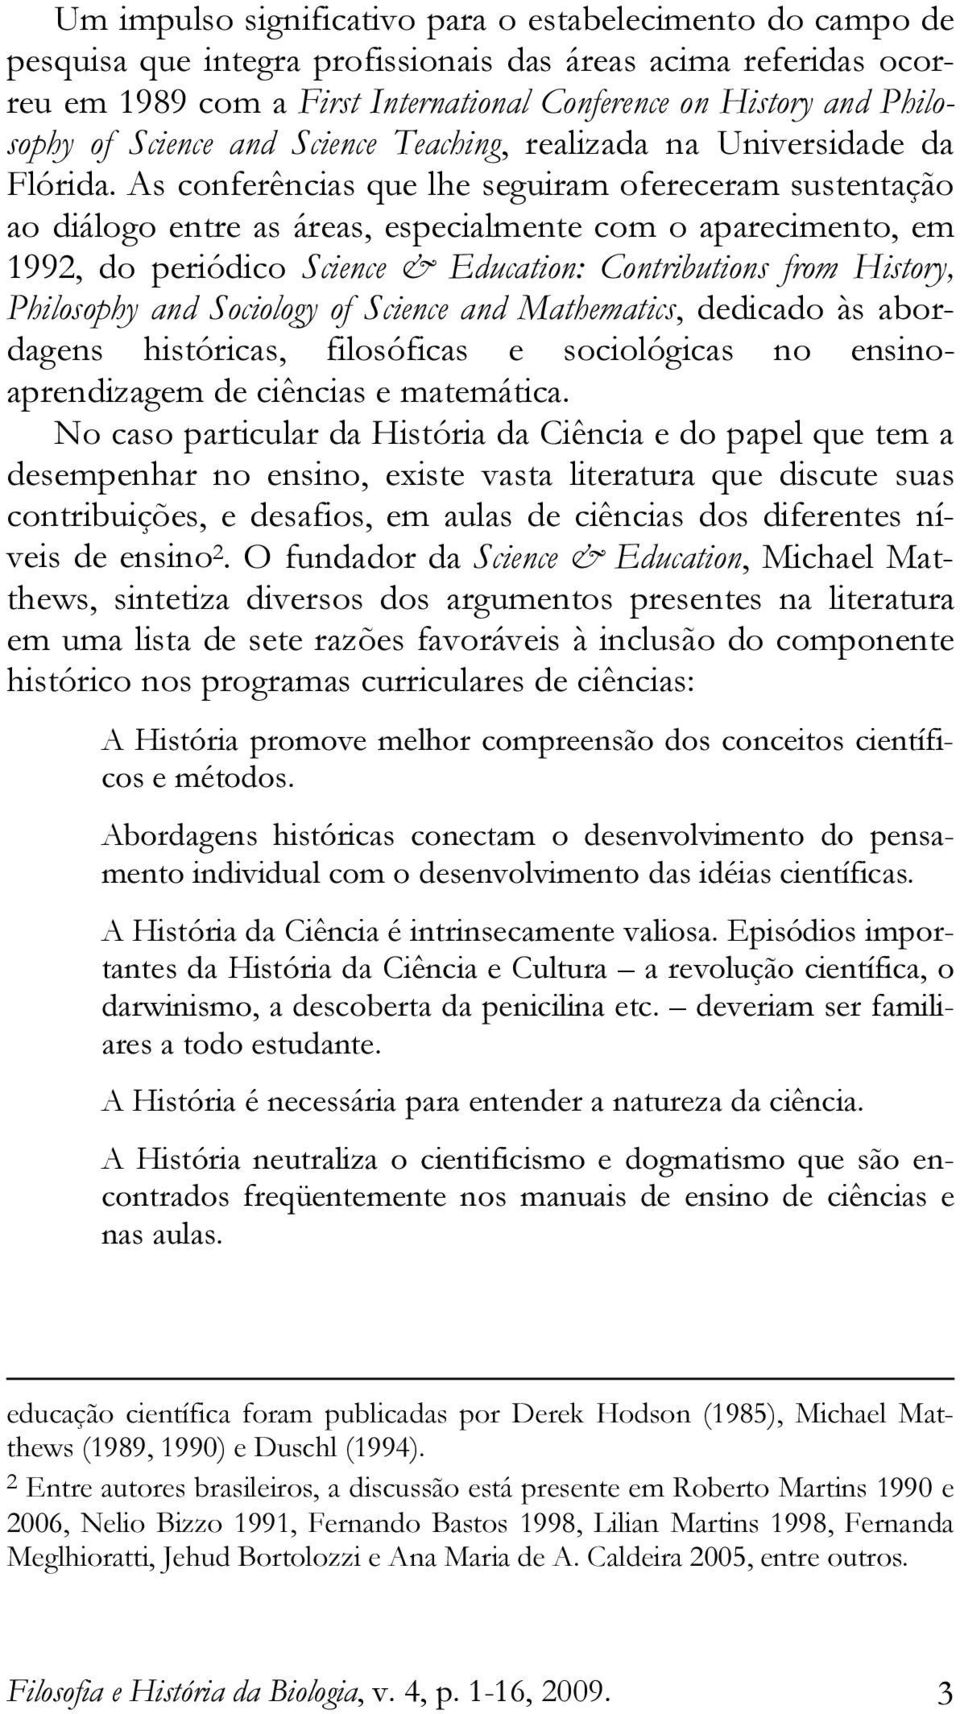 As conferências que lhe seguiram ofereceram sustentação ao diálogo entre as áreas, especialmente com o aparecimento, em 1992, do periódico Science & Education: Contributions from History, Philosophy